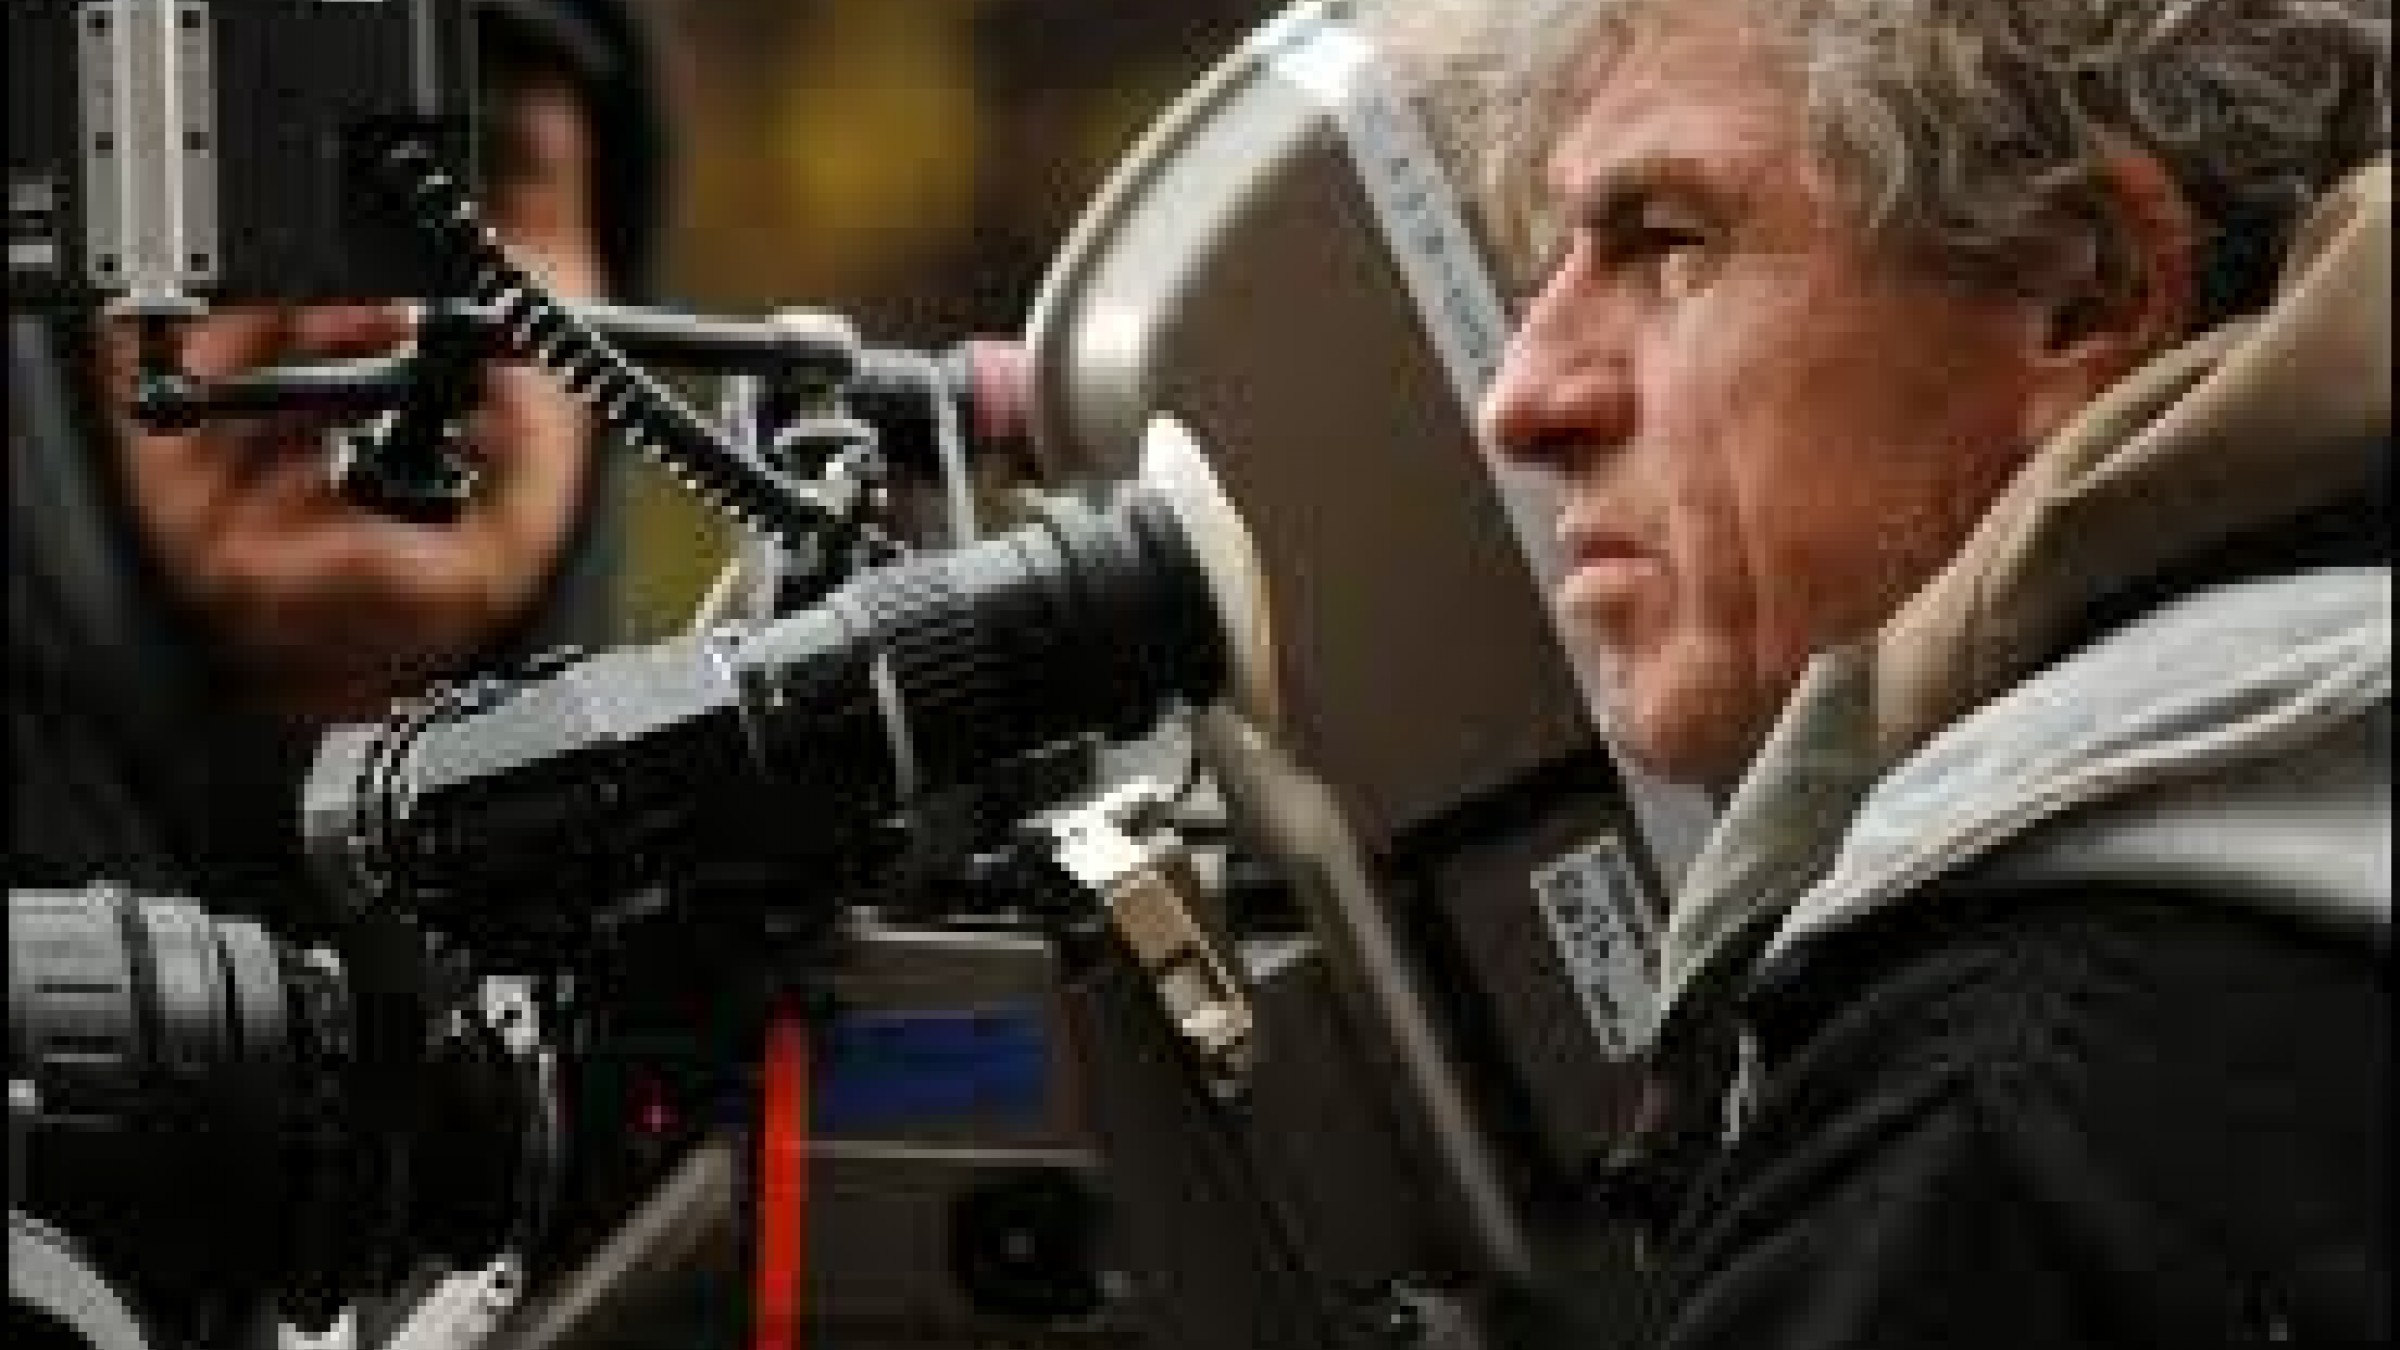 Masterclass in Cinematography from Legendary DP Christopher Doyle